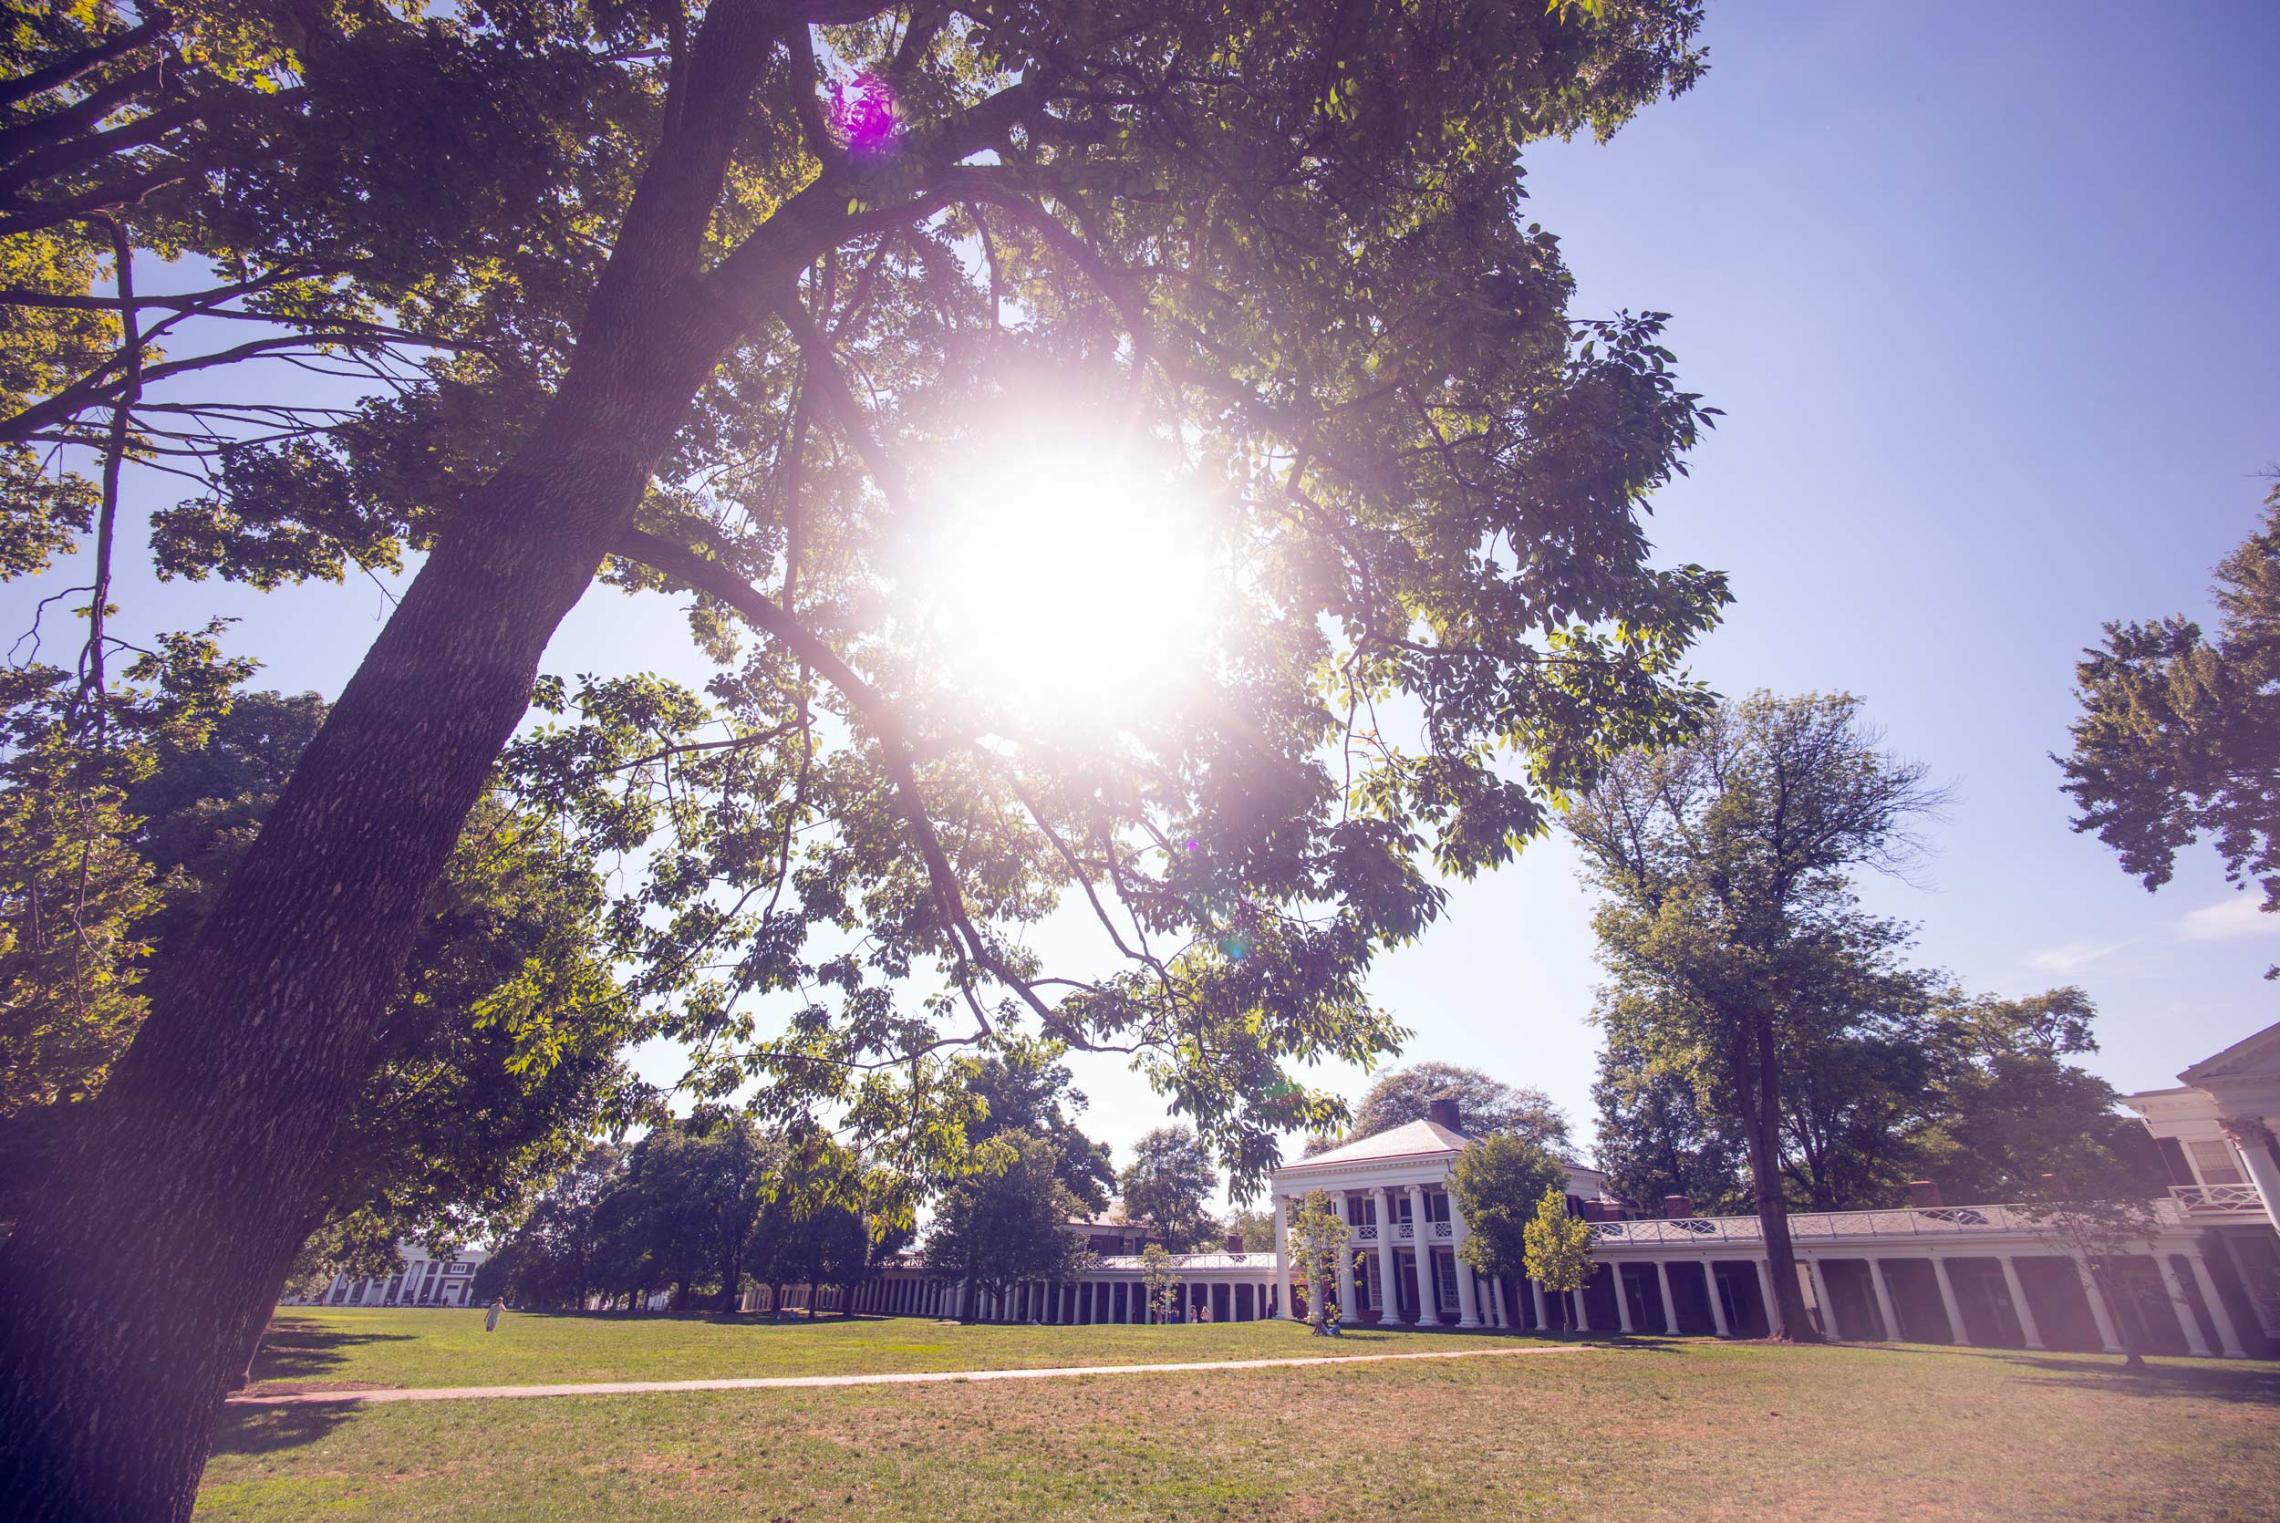 The University of Virginia's Lawn, the first thing visitors take in during the virtual tour.